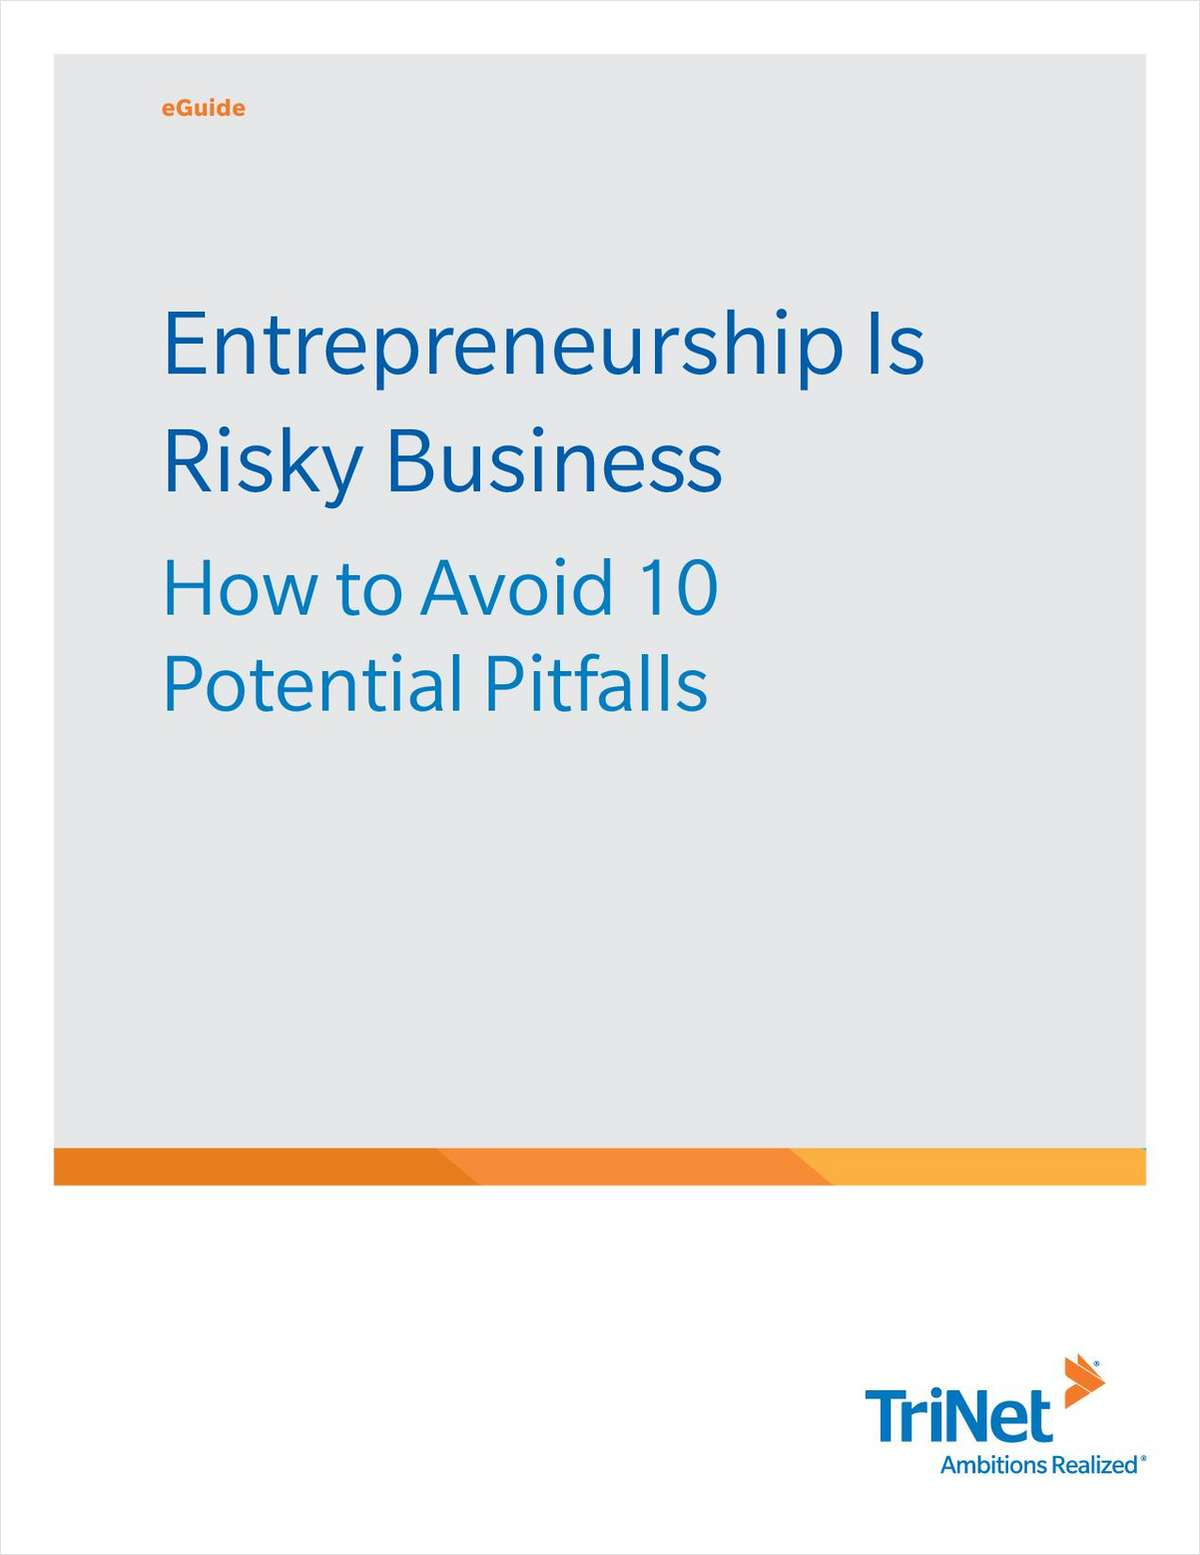 Entrepreneurship is Risky Business: How to Avoid 10 Potential Pitfalls